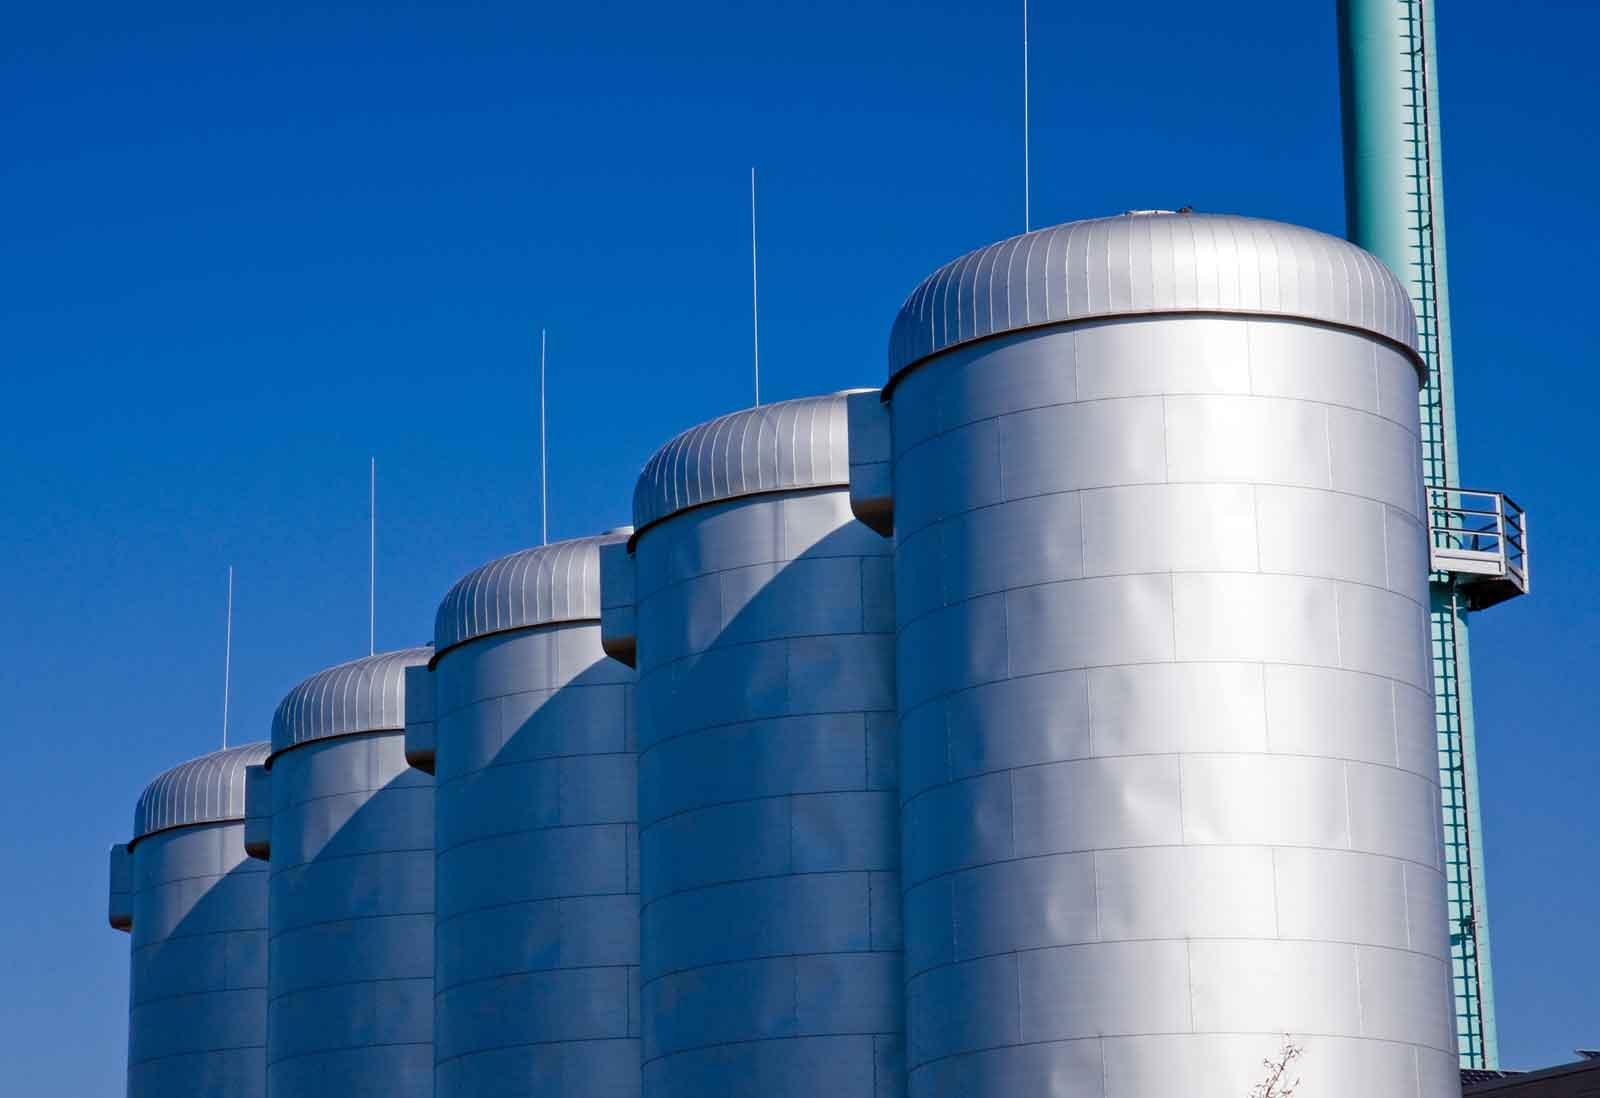 A row of four silver metal silos against a blue sky